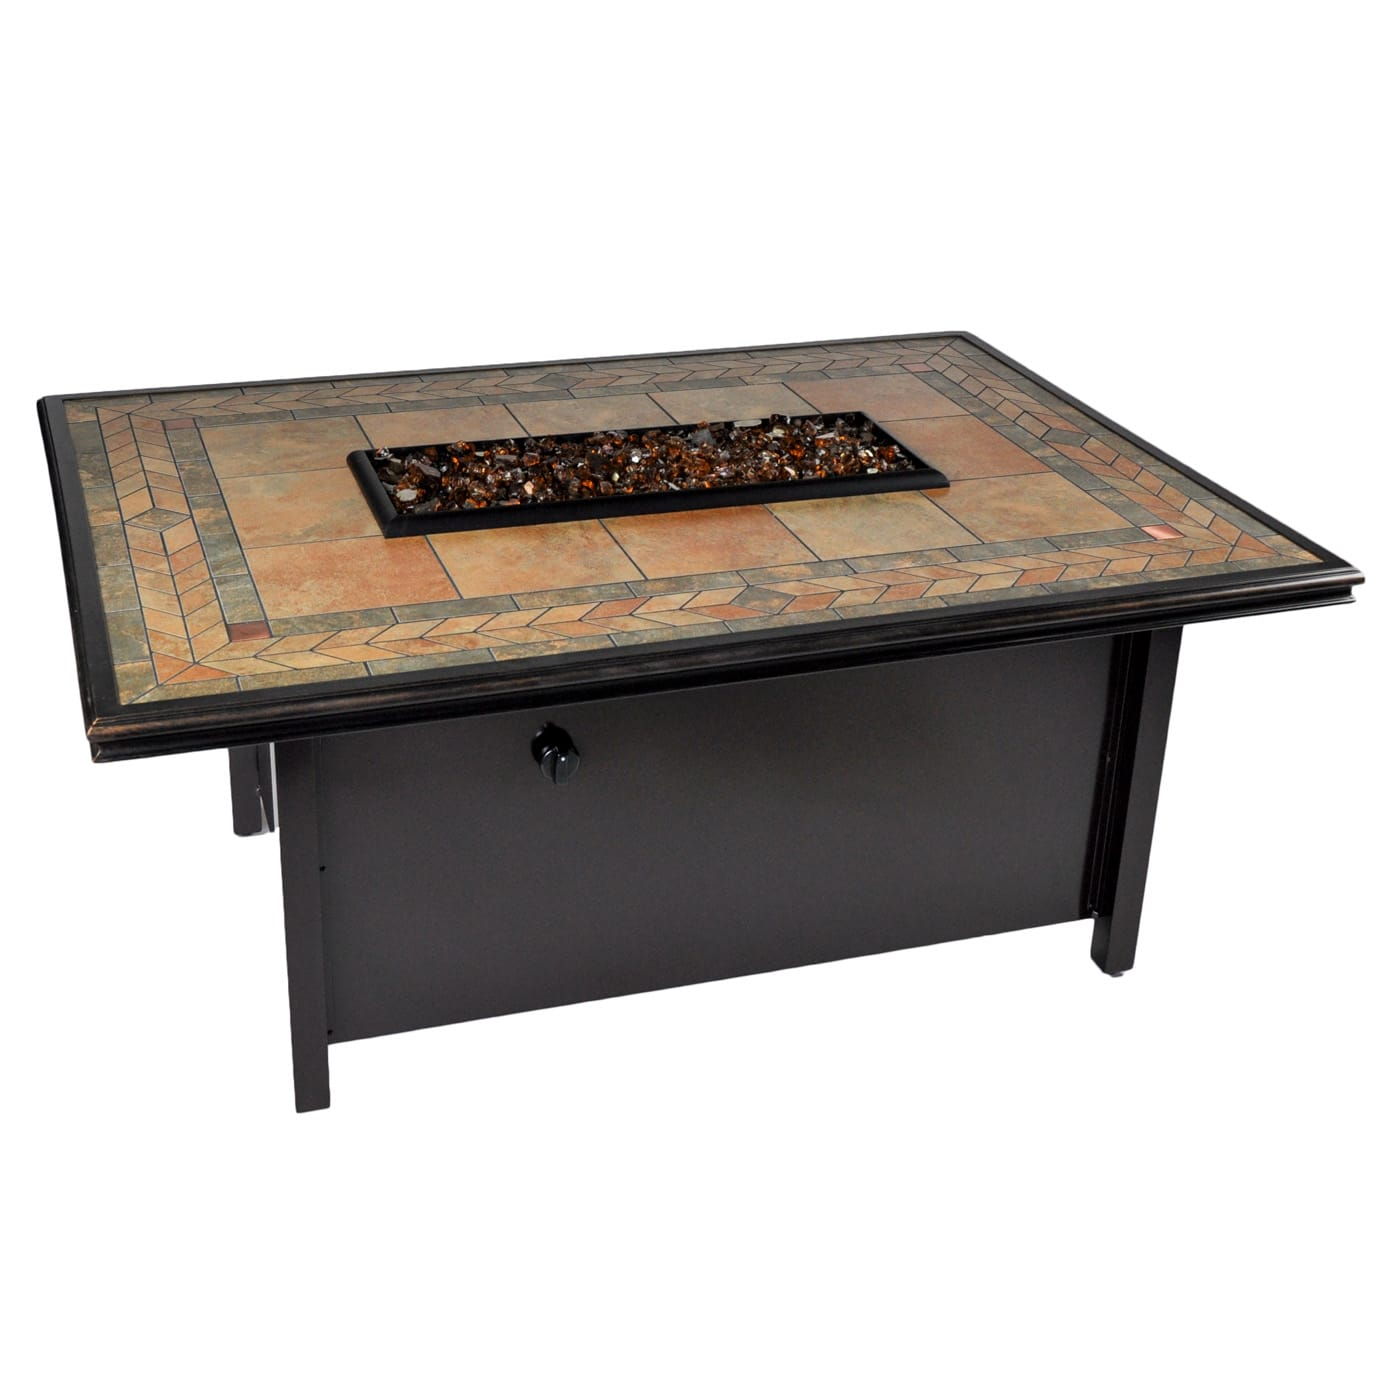 Tretco Panama 50 inch x 36 inch Fire Pit Table - FP-A-PAN-3624-1